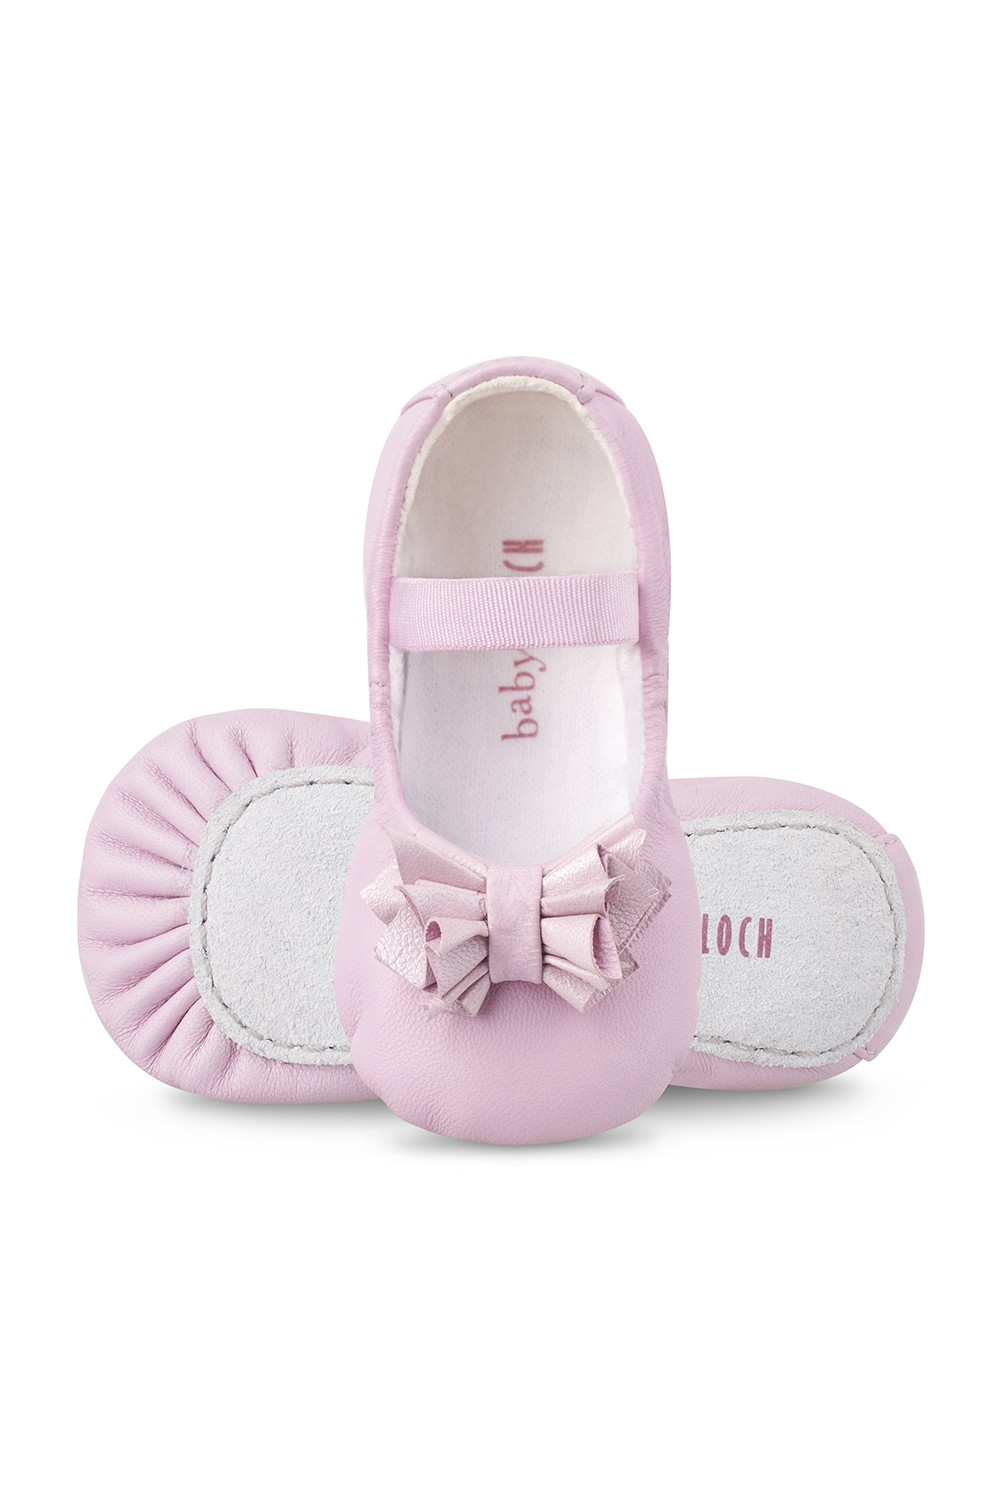 Twilight Baby Ballet Flat Babies Fashion Shoes